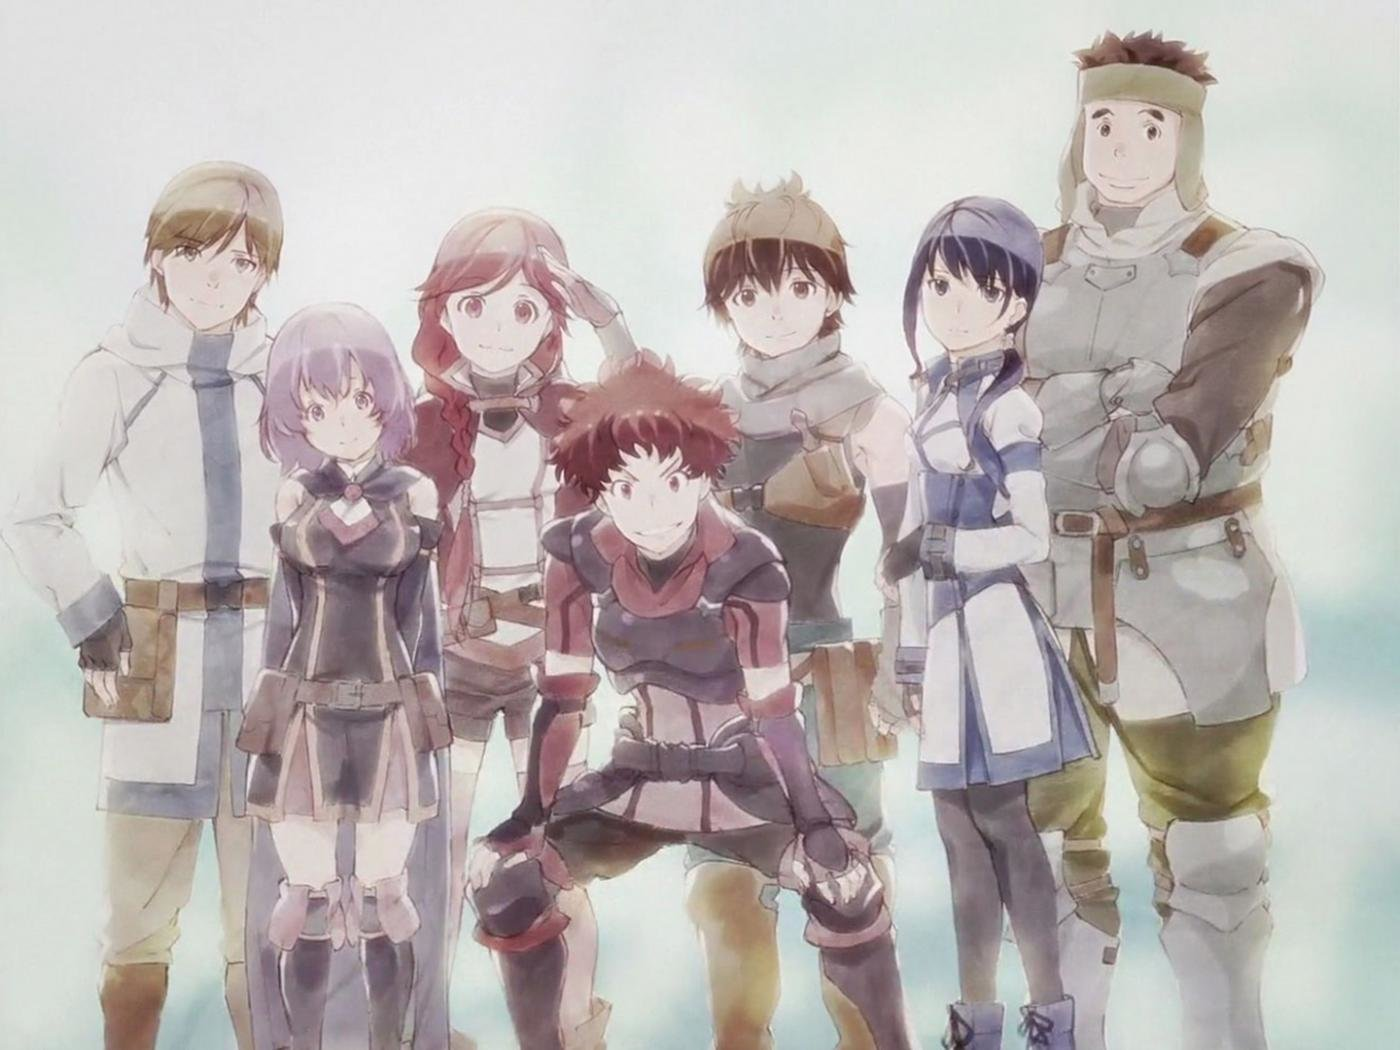 Download hd 1400x1050 Grimgar Of Fantasy And Ash PC wallpaper ID:39929 for free